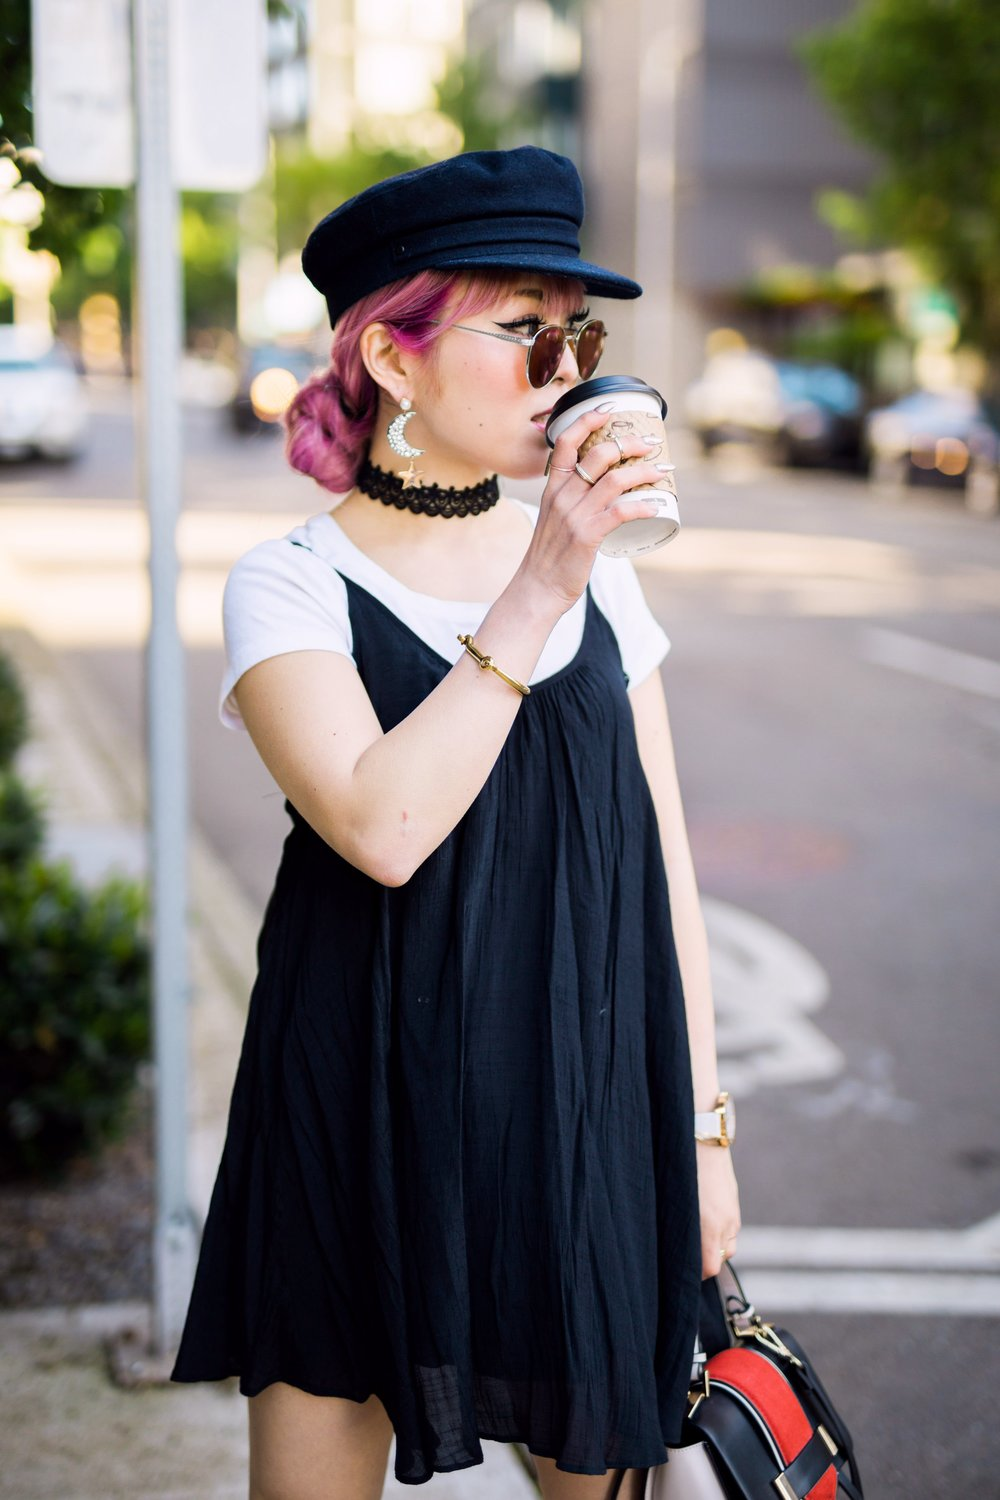 Aritzia News Boy Cap_Polette Retro Round Sunglasses_Mango Moon Star Earrings_Shopdixi Lace Choker_Forever 21 White Tee_Urban Outfitters Little Black Dress_Zara Bag_Sheer ankle Socks_ASOS Glitter Block heels Shoes_Aikas Love Closet_Seattle Fashion Blogger_Japanese_Pink hair 16